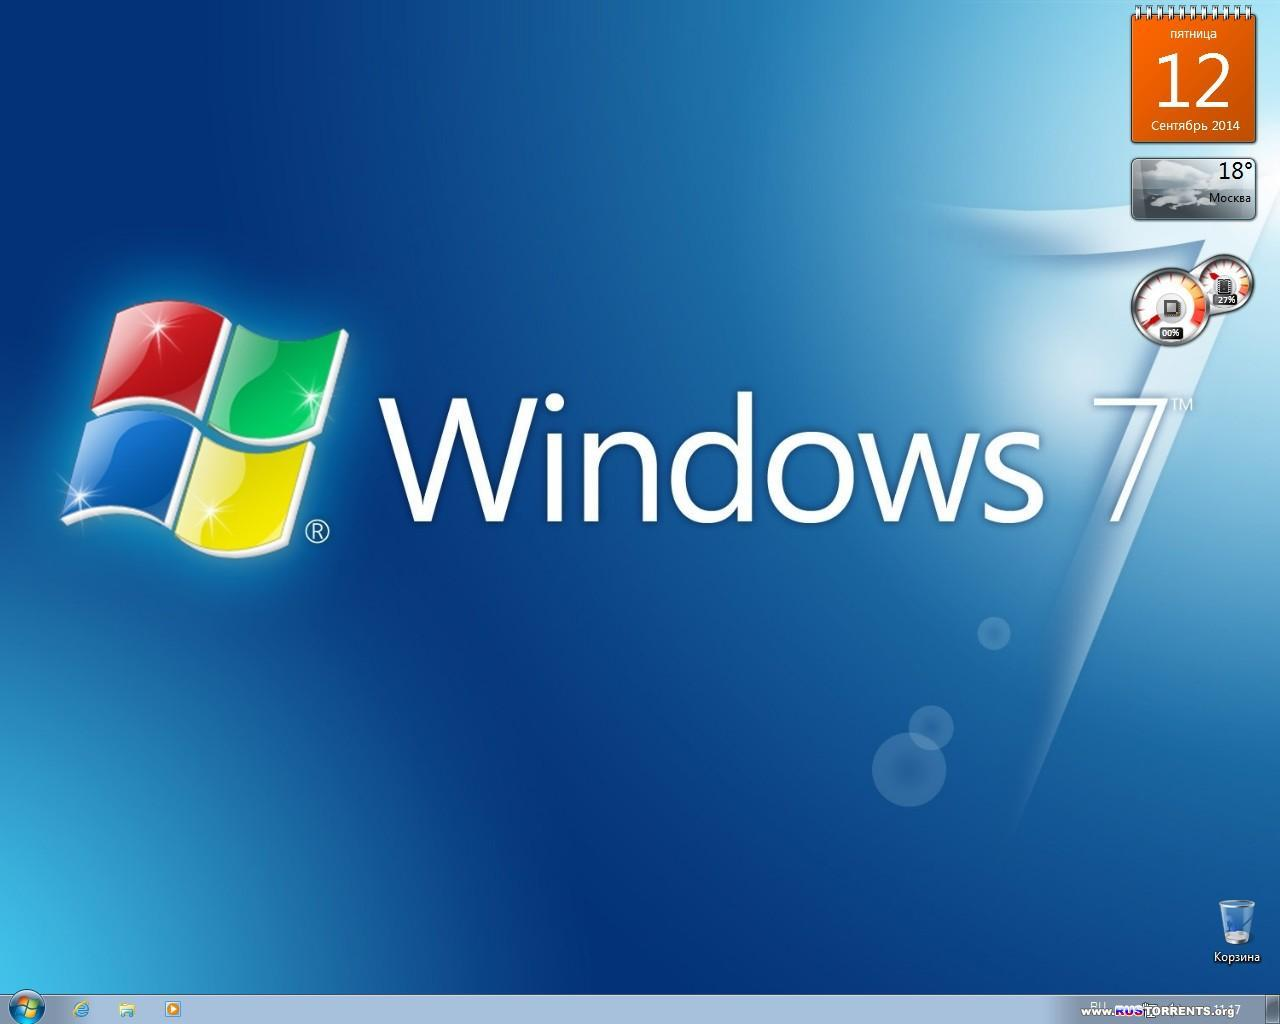 Windows 7 Ultimate SP1 x86/x64 Elgujakviso Edition v12.09.14